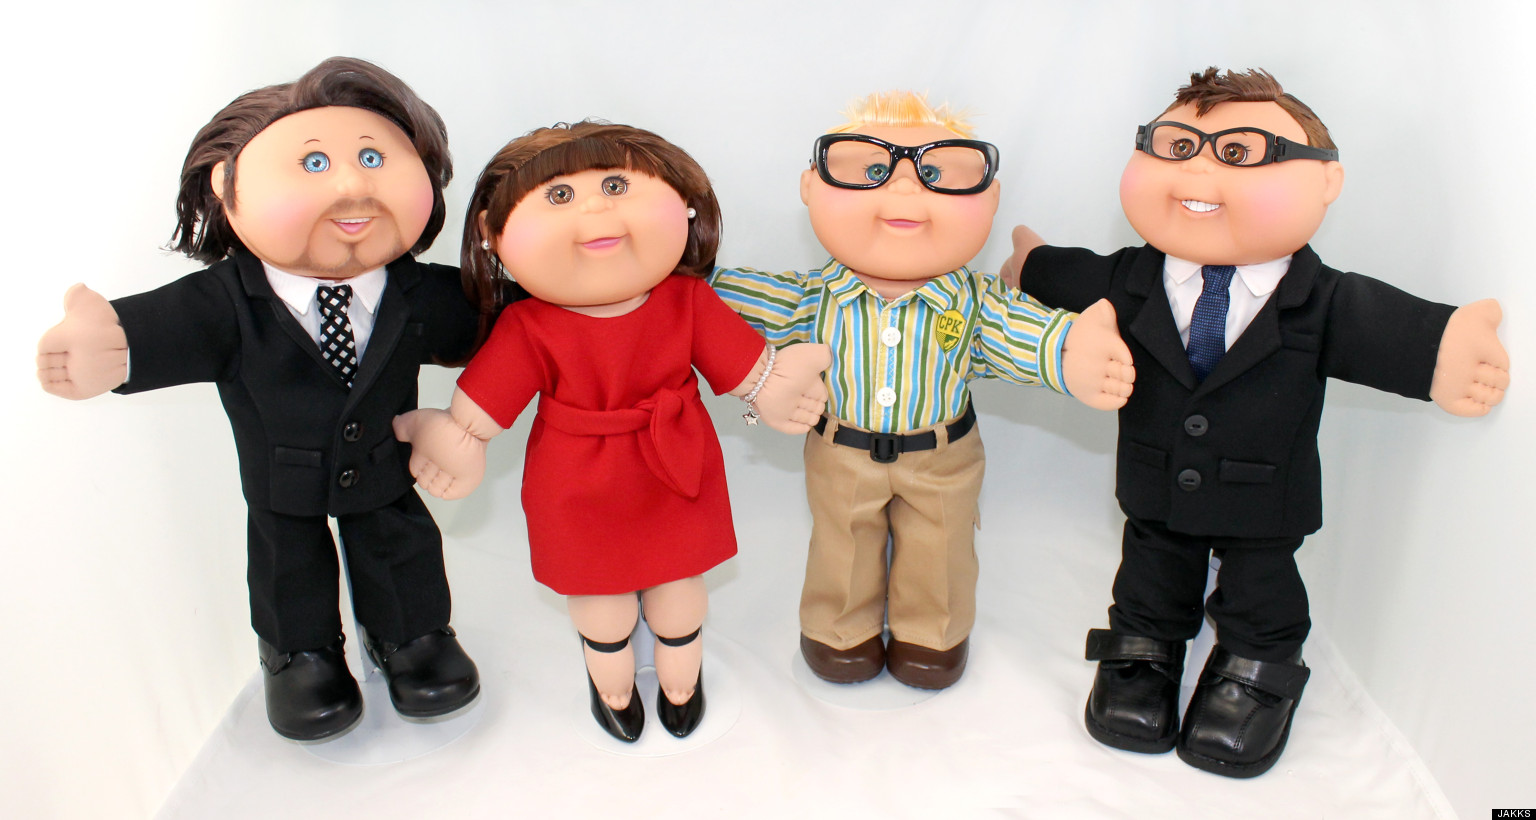 Inside The Shameful Cabbage Patch Kids Scandal The Company ...